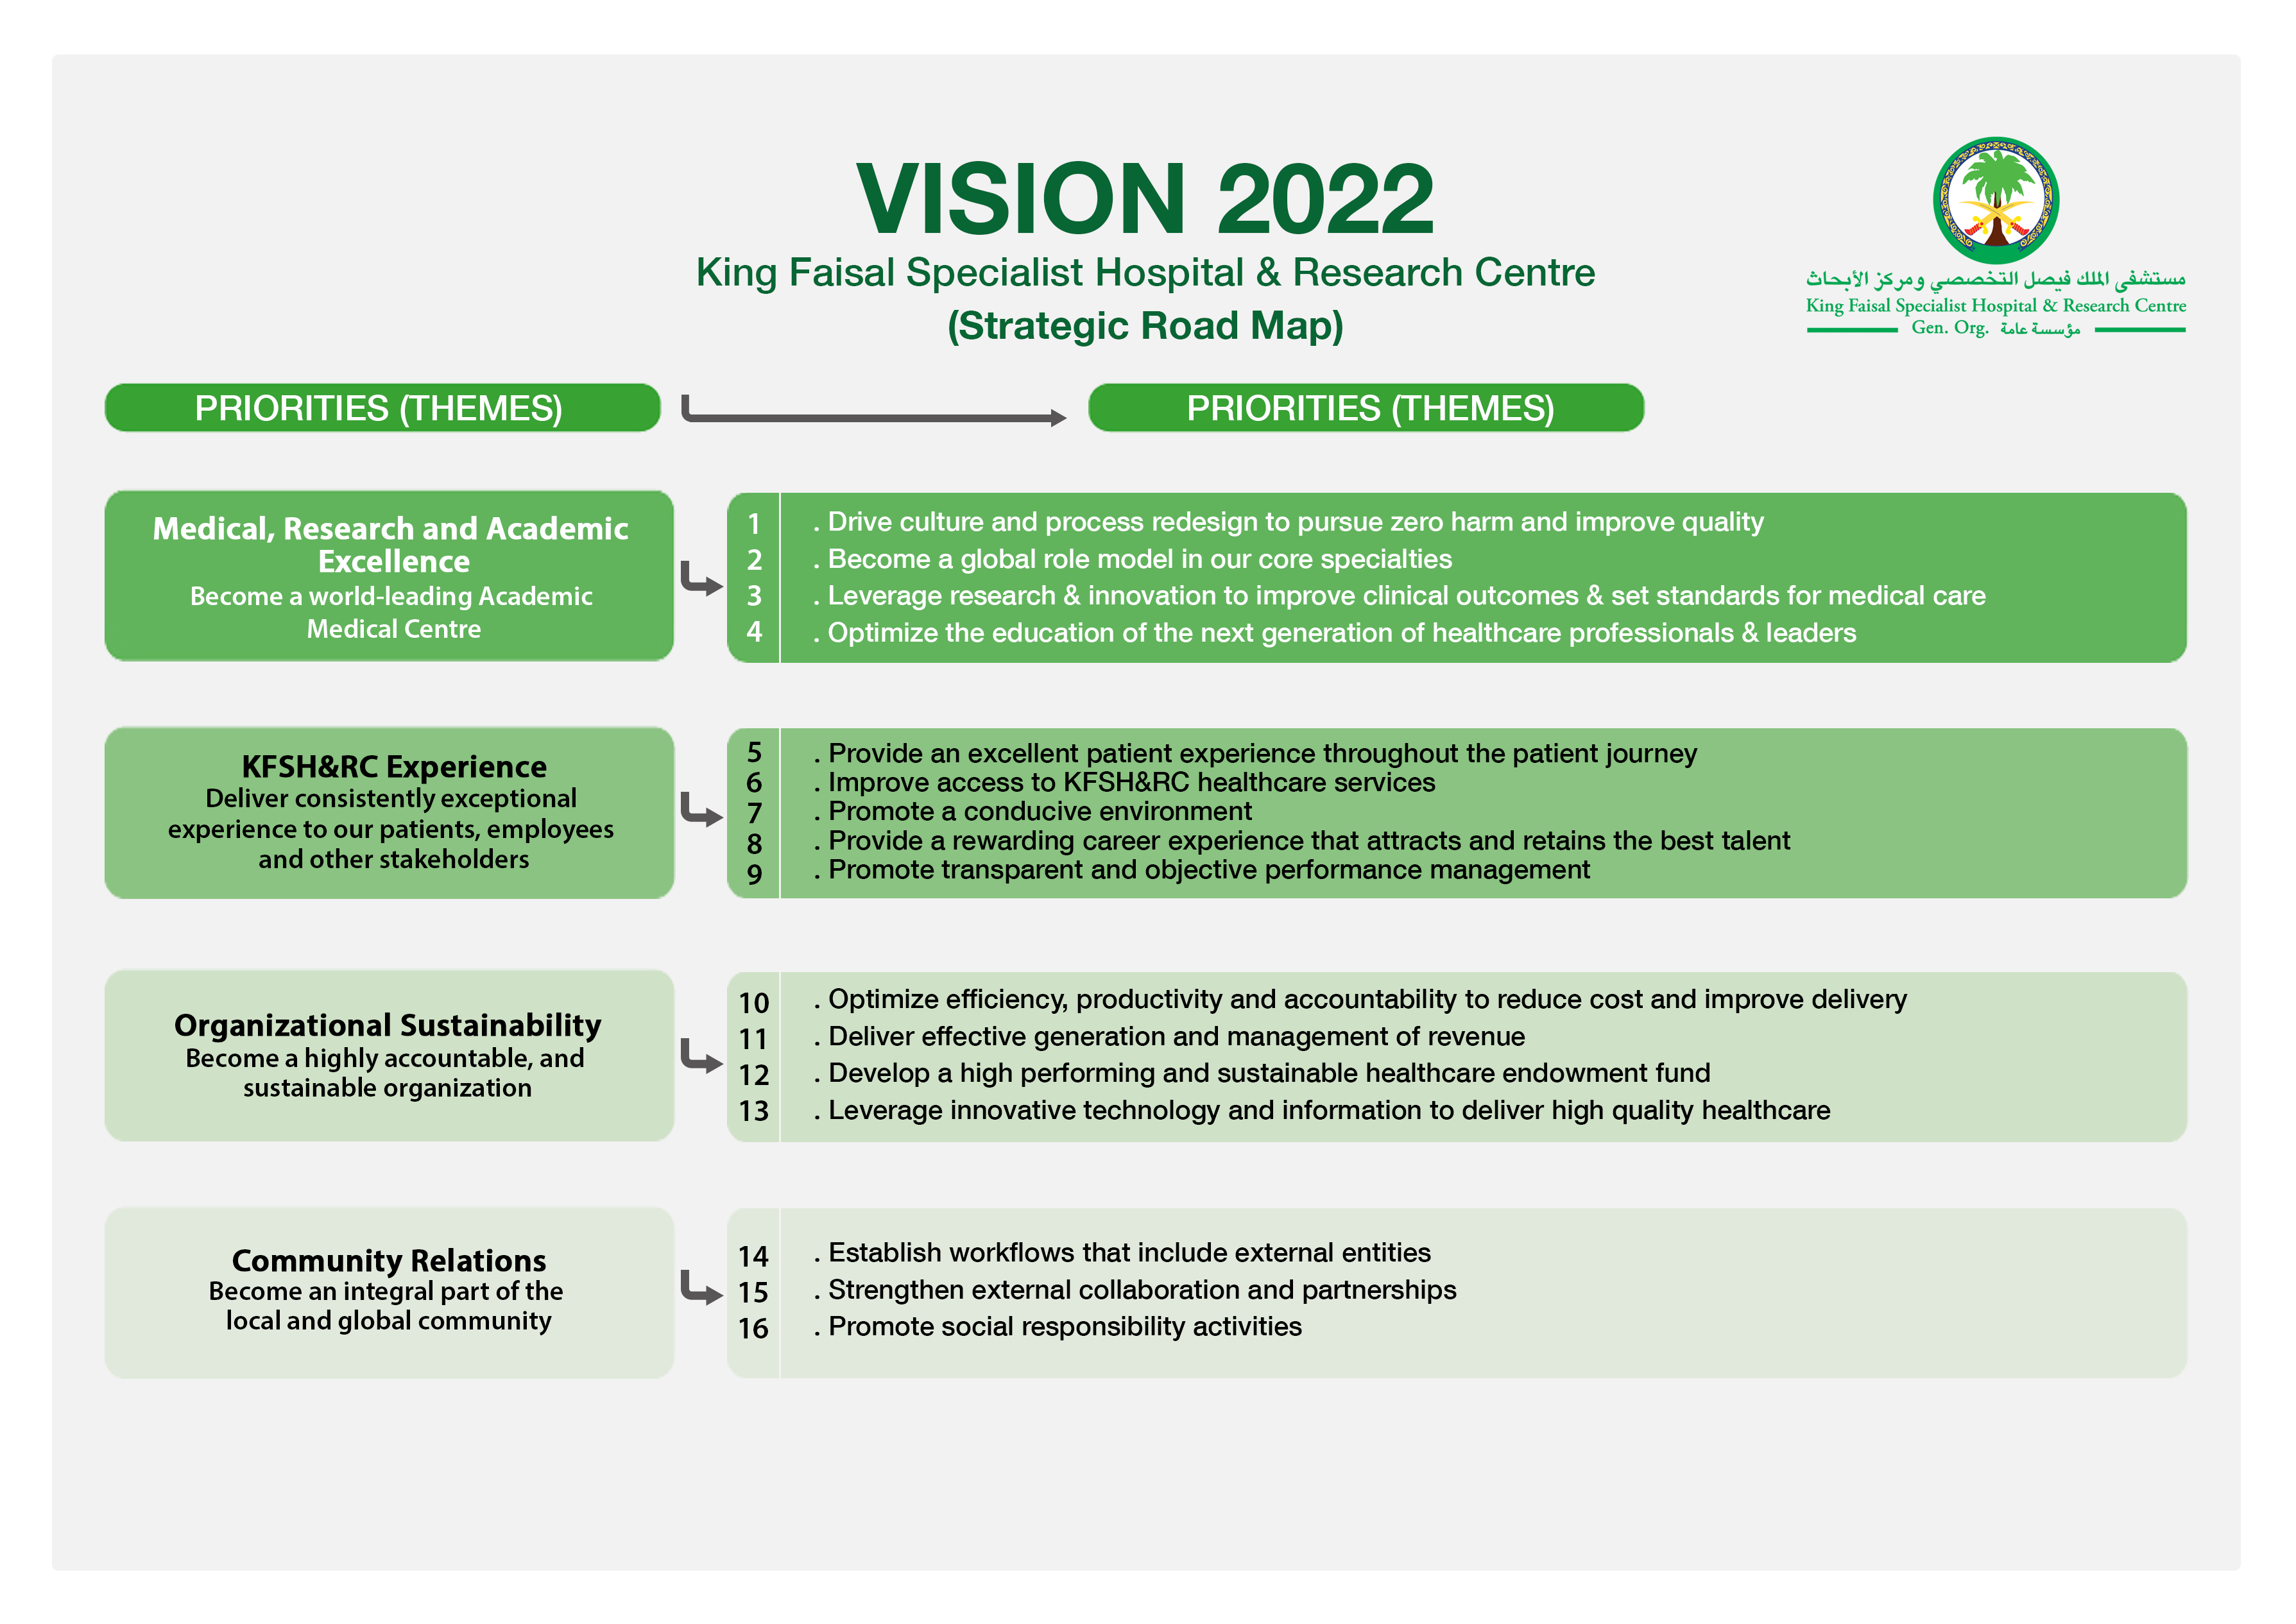 Strategic Plan | King Faisal Specialist Hospital & Research